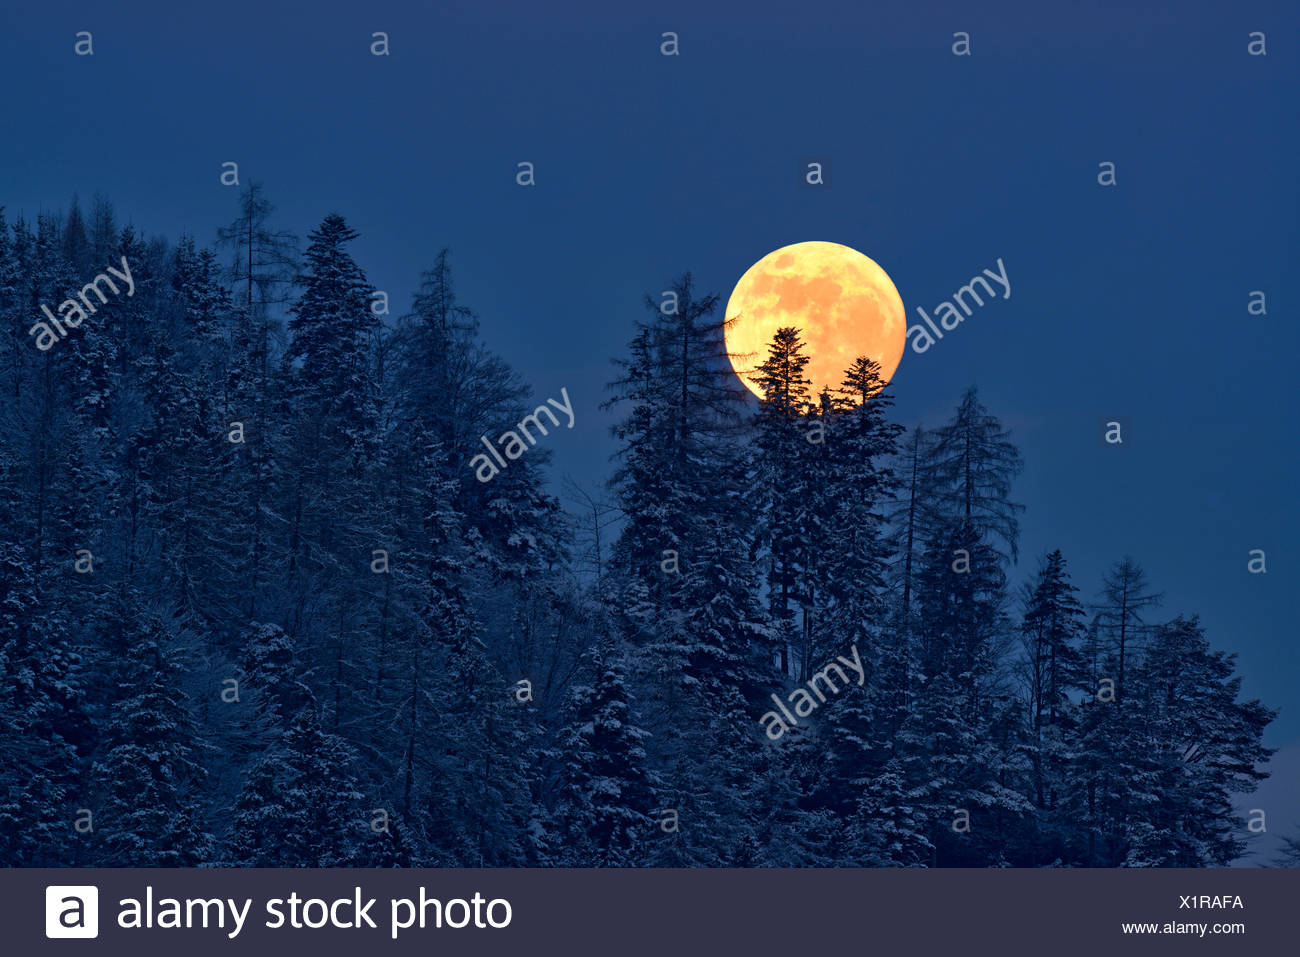 The full moon rising over a winter forest, Tyrol, Austria - Stock Image